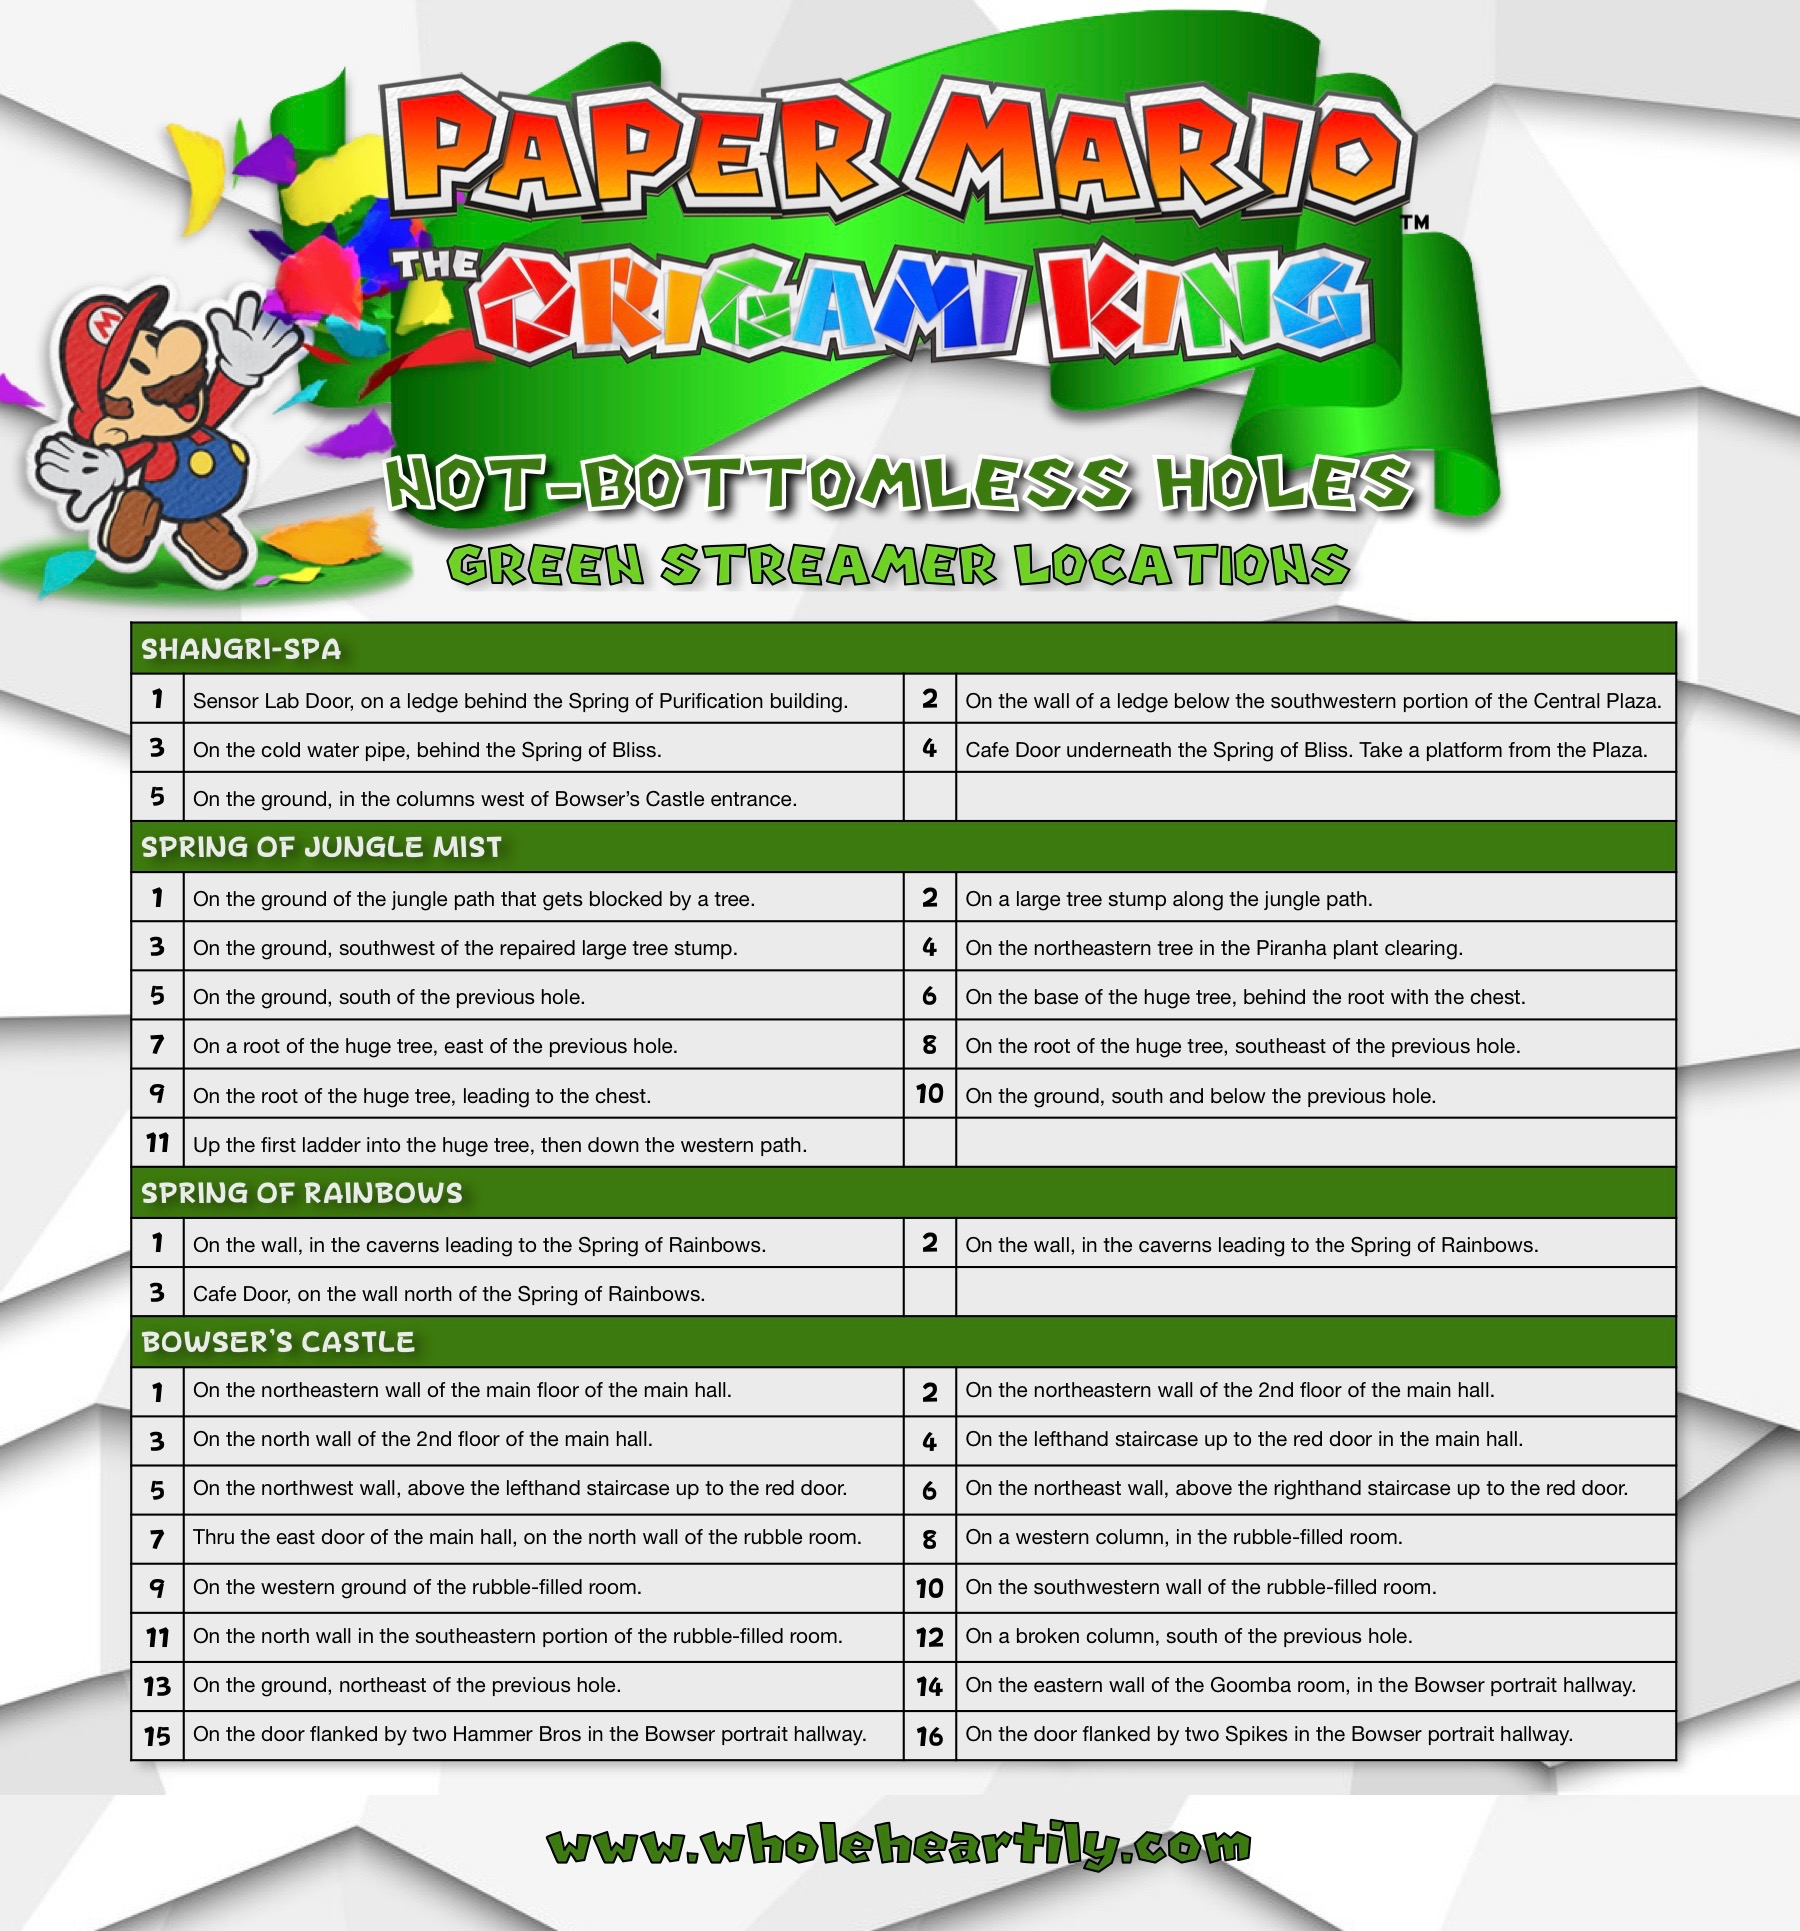 Paper Mario: The Origami King - Green Streamer Not-Bottomless Holes Guide